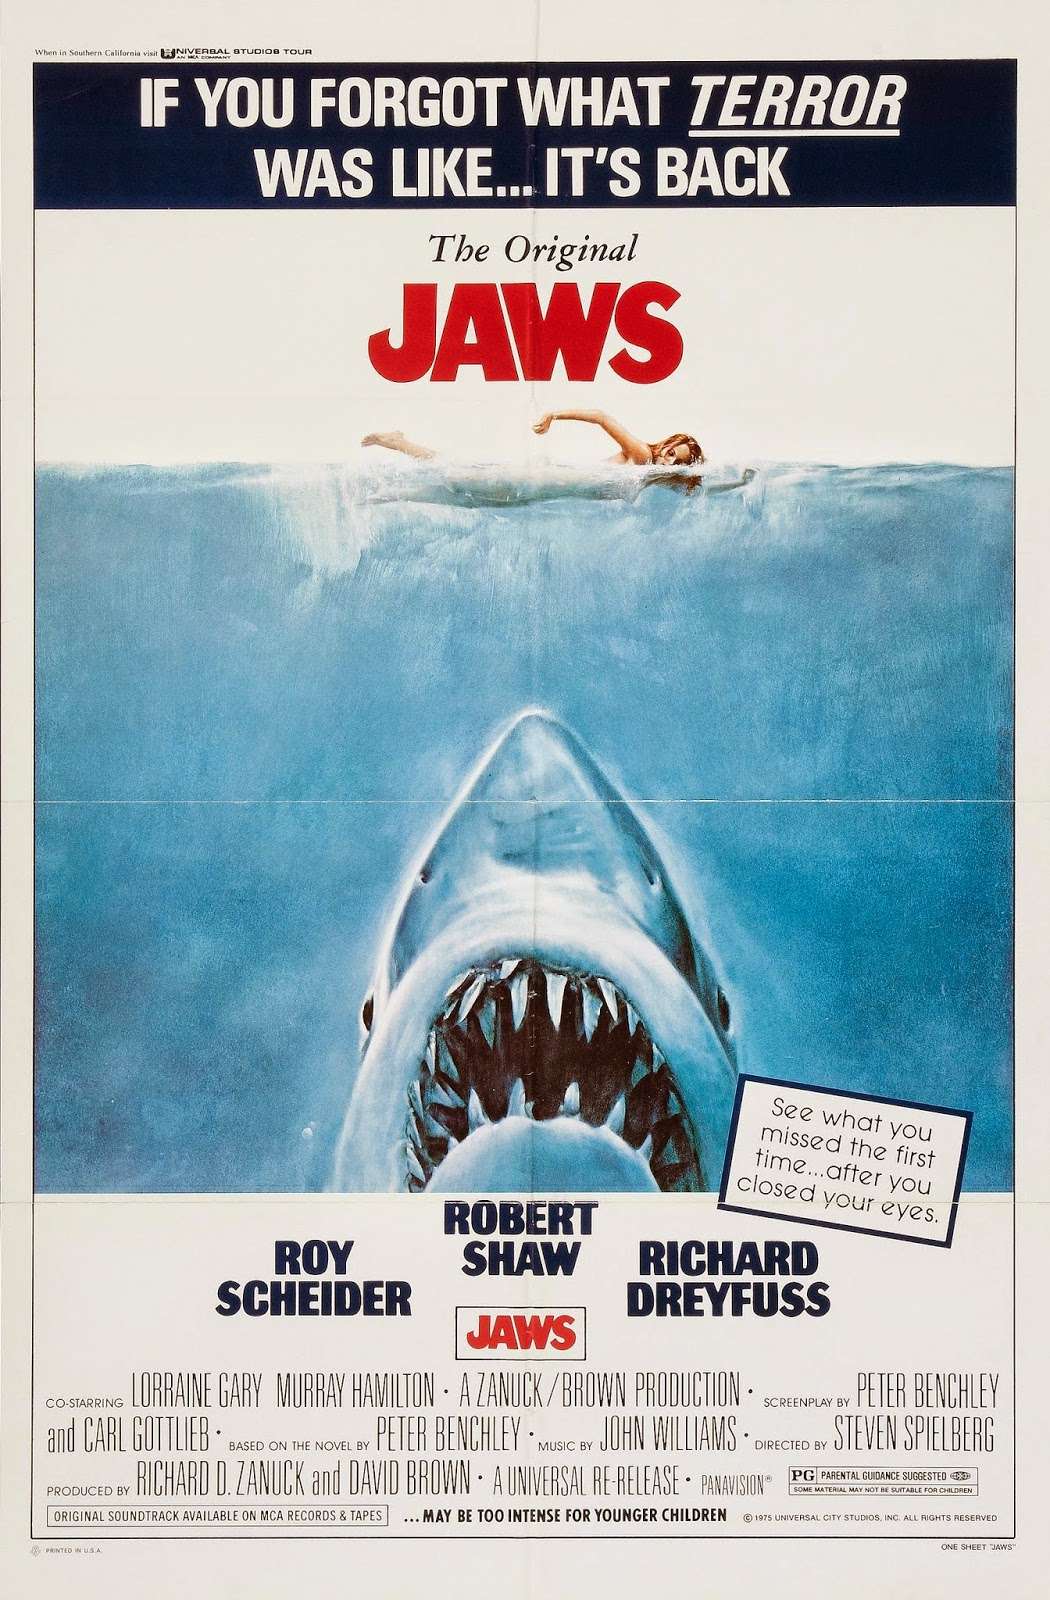 fear and terror in jaws a film by steven spielberg When making the film jaws steven spielberg had to face the challenging is jaws a horror movie imagine the terror in order to maximise the fear.